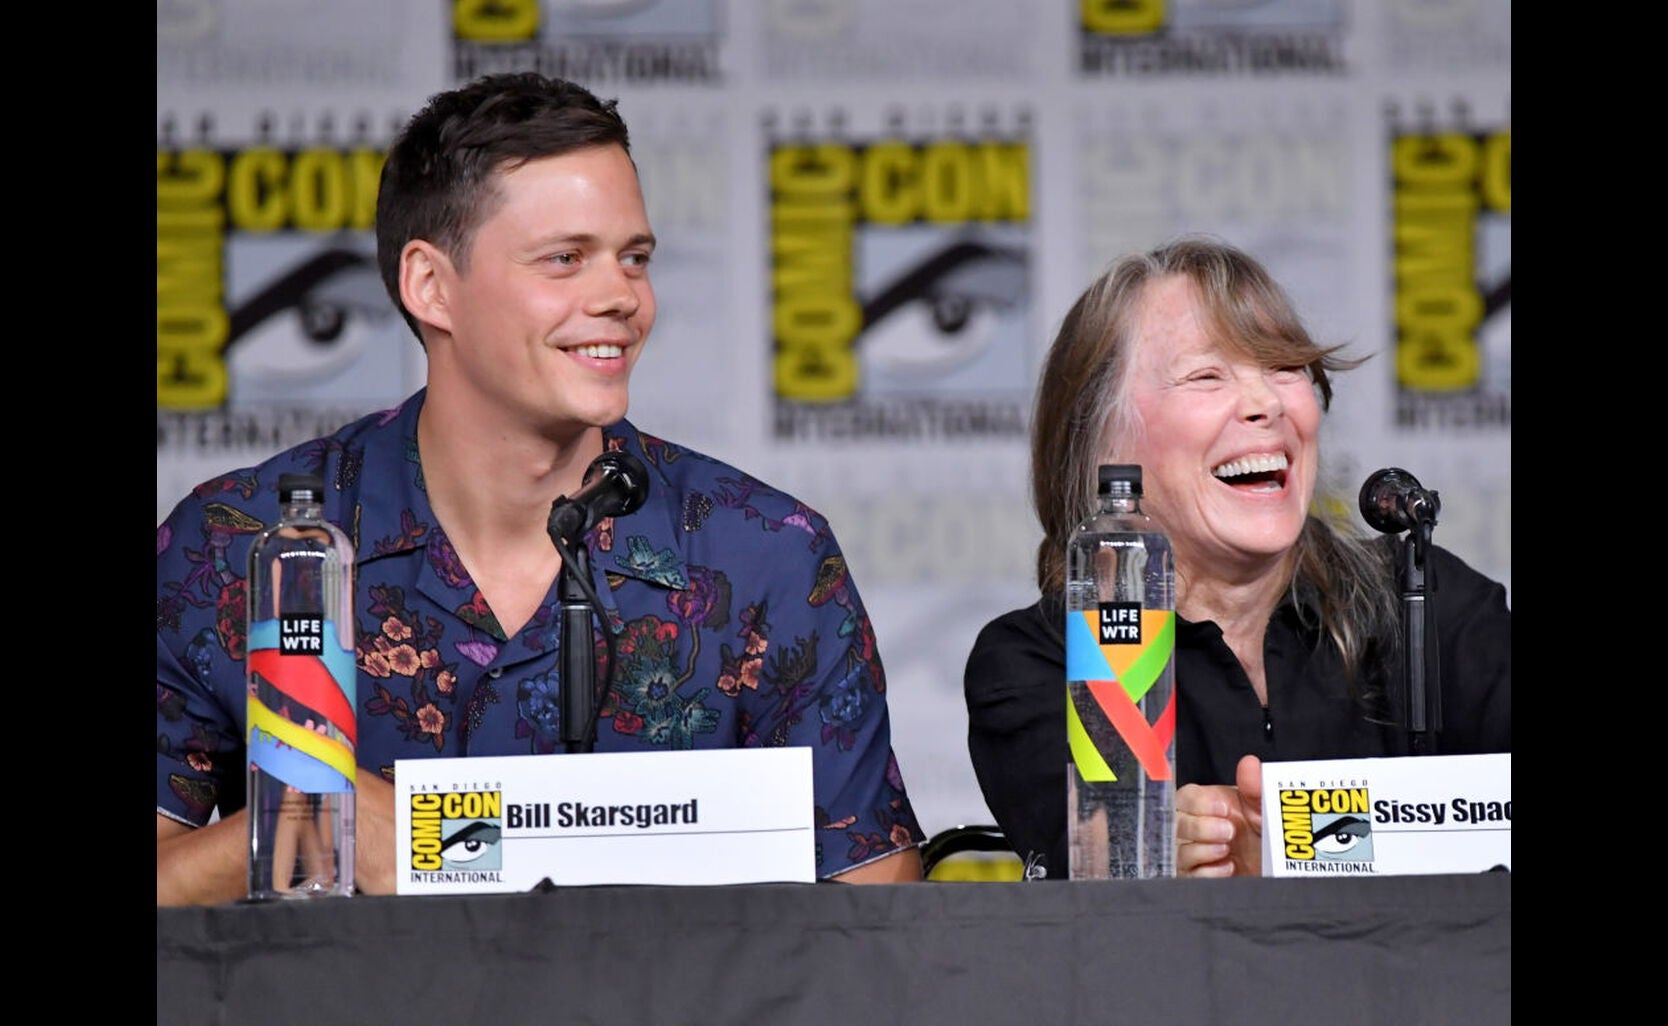 Actors Bill Skarsgard and Sissy Spacek at Comic-Con 2018